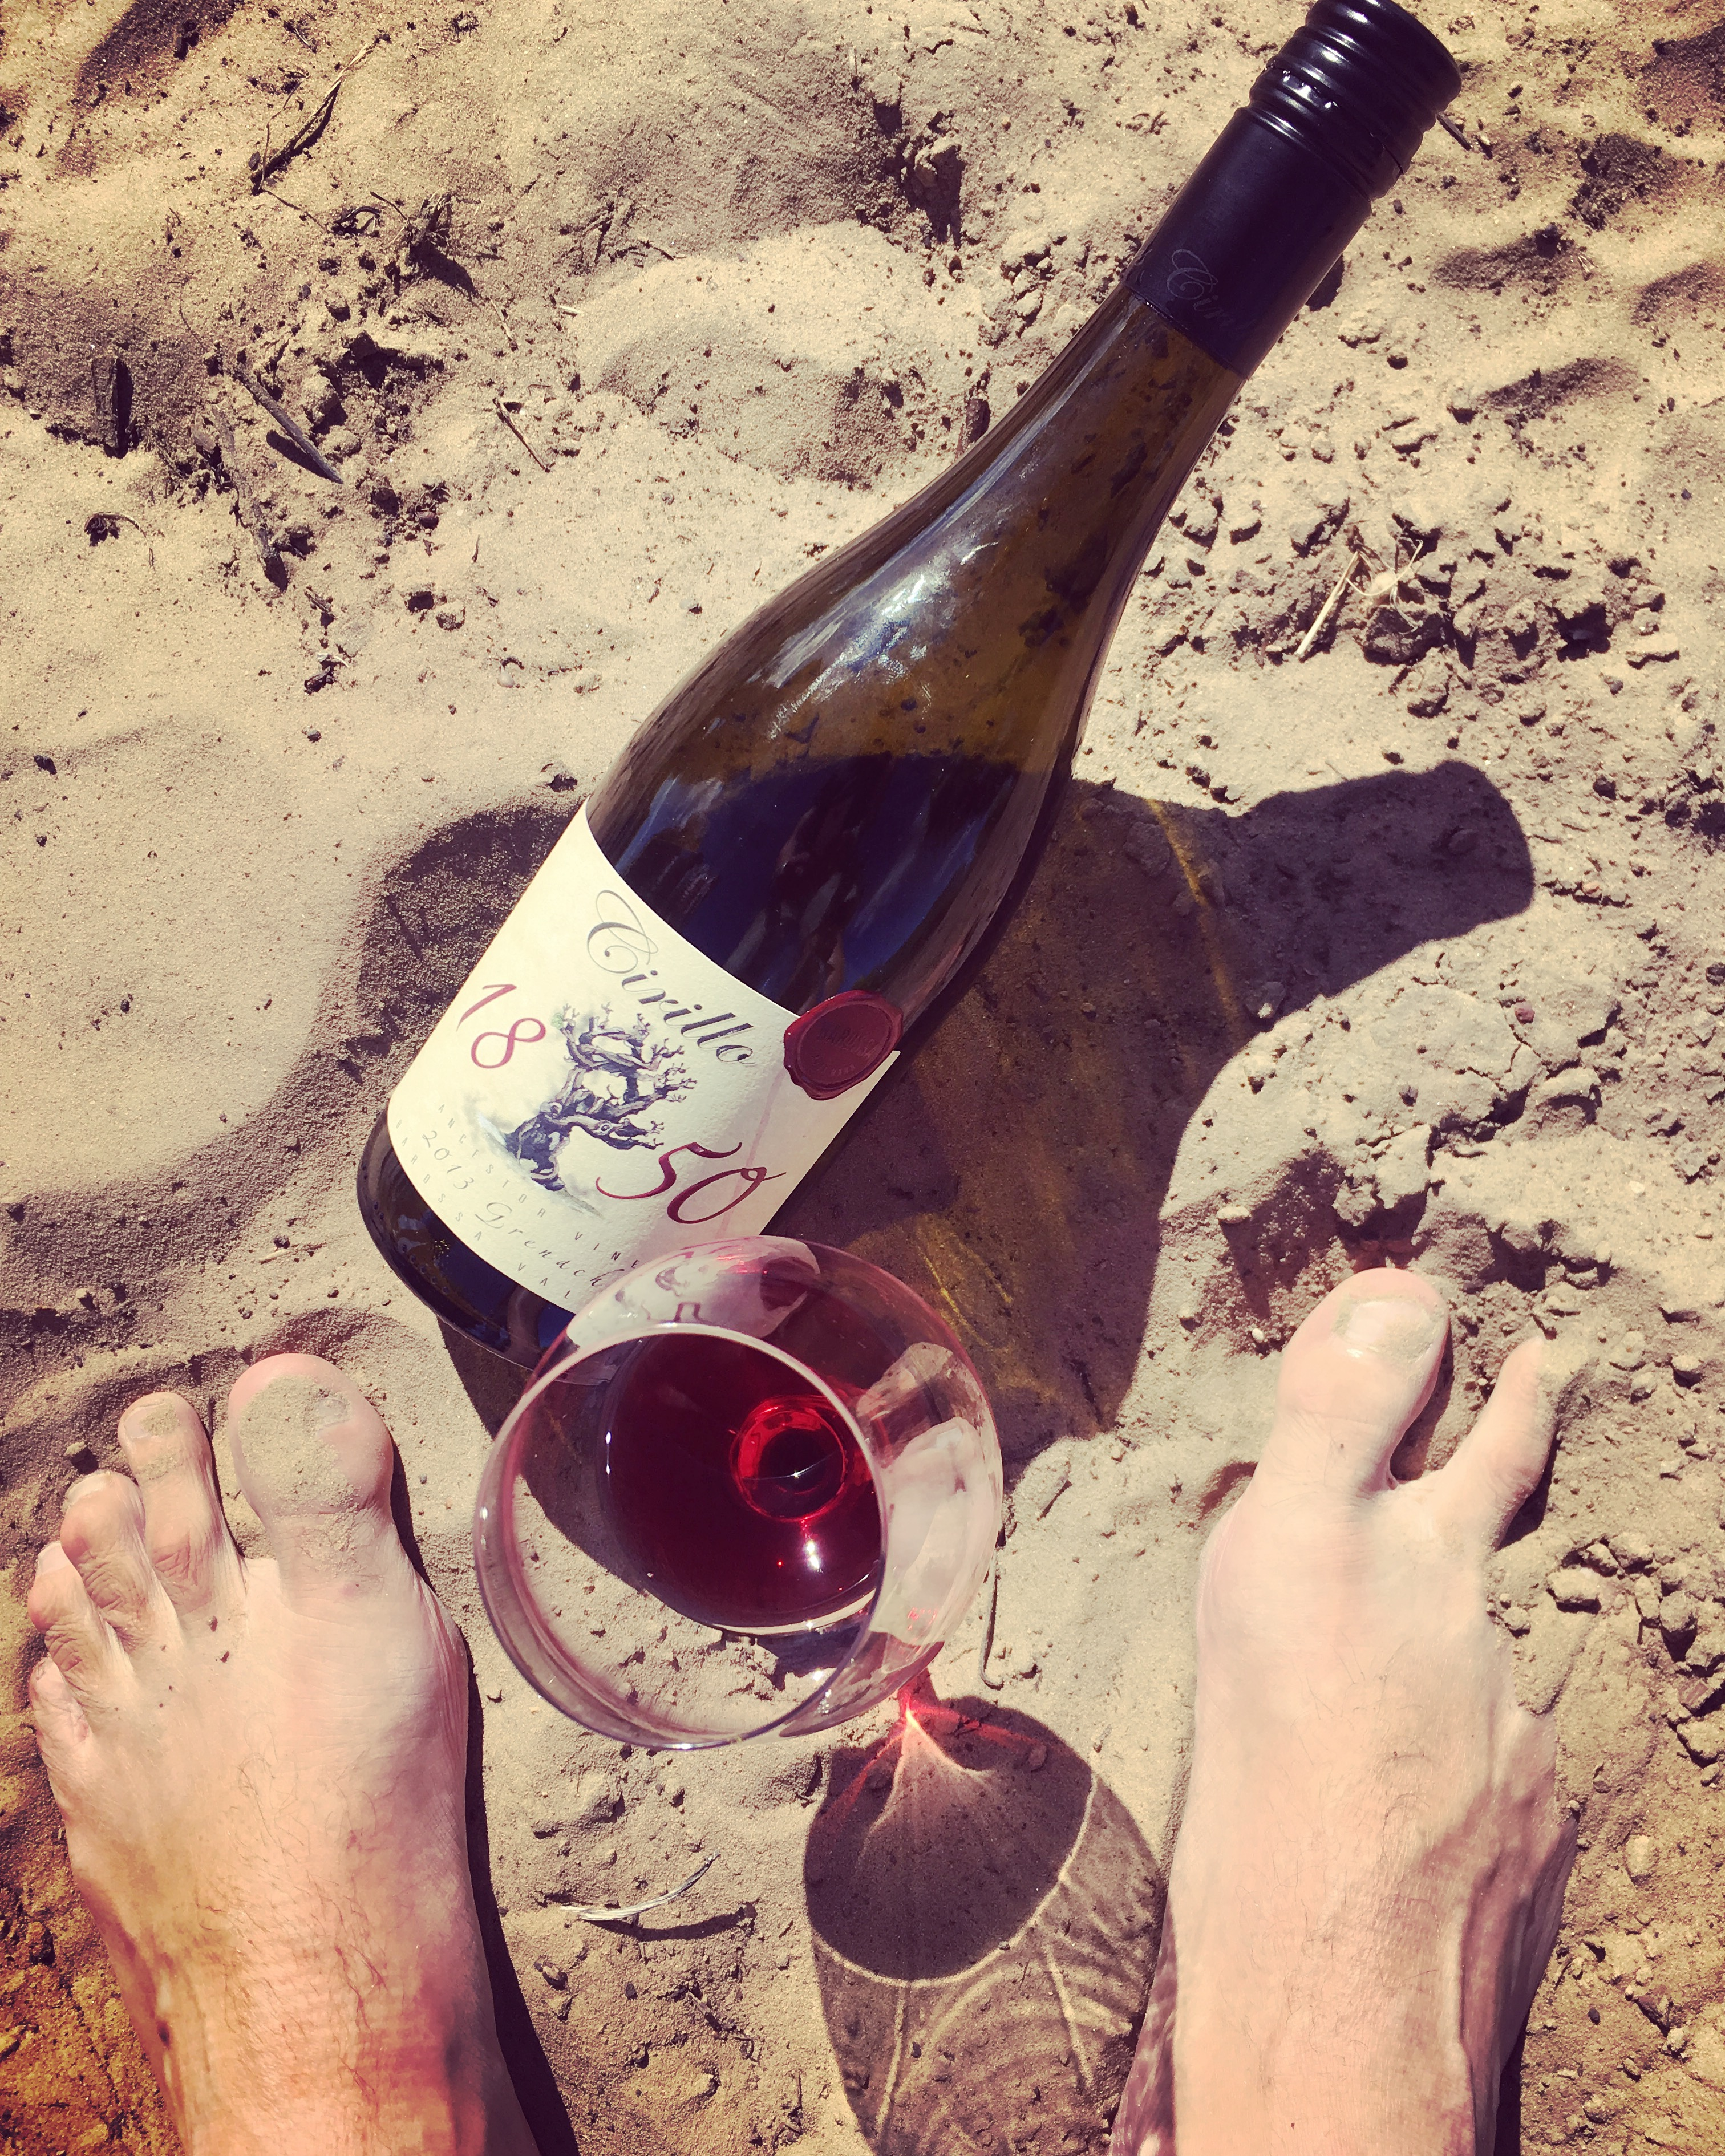 Grenache on sand, Cirillo, Barossa Valley